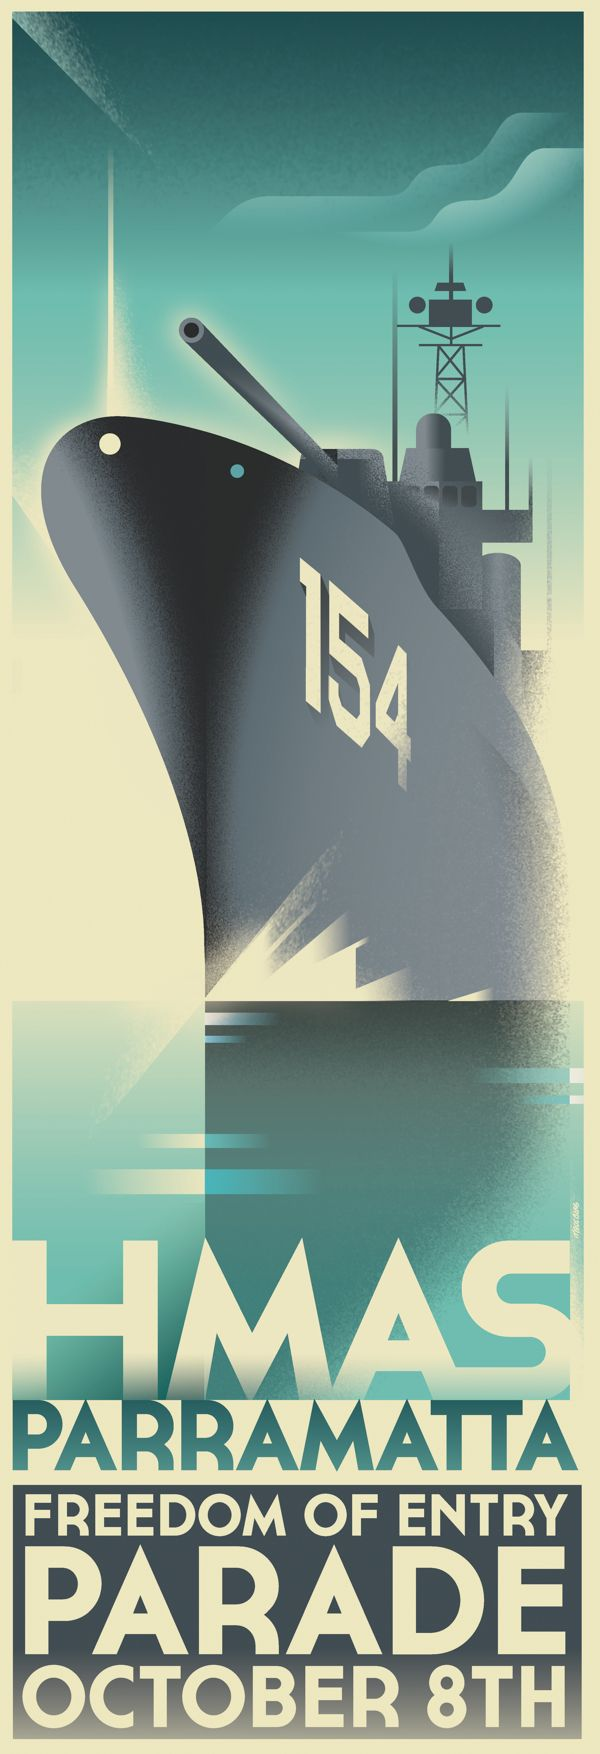 HMAS Parramatta - Freedom of Entry by Mads Berg, via Behance